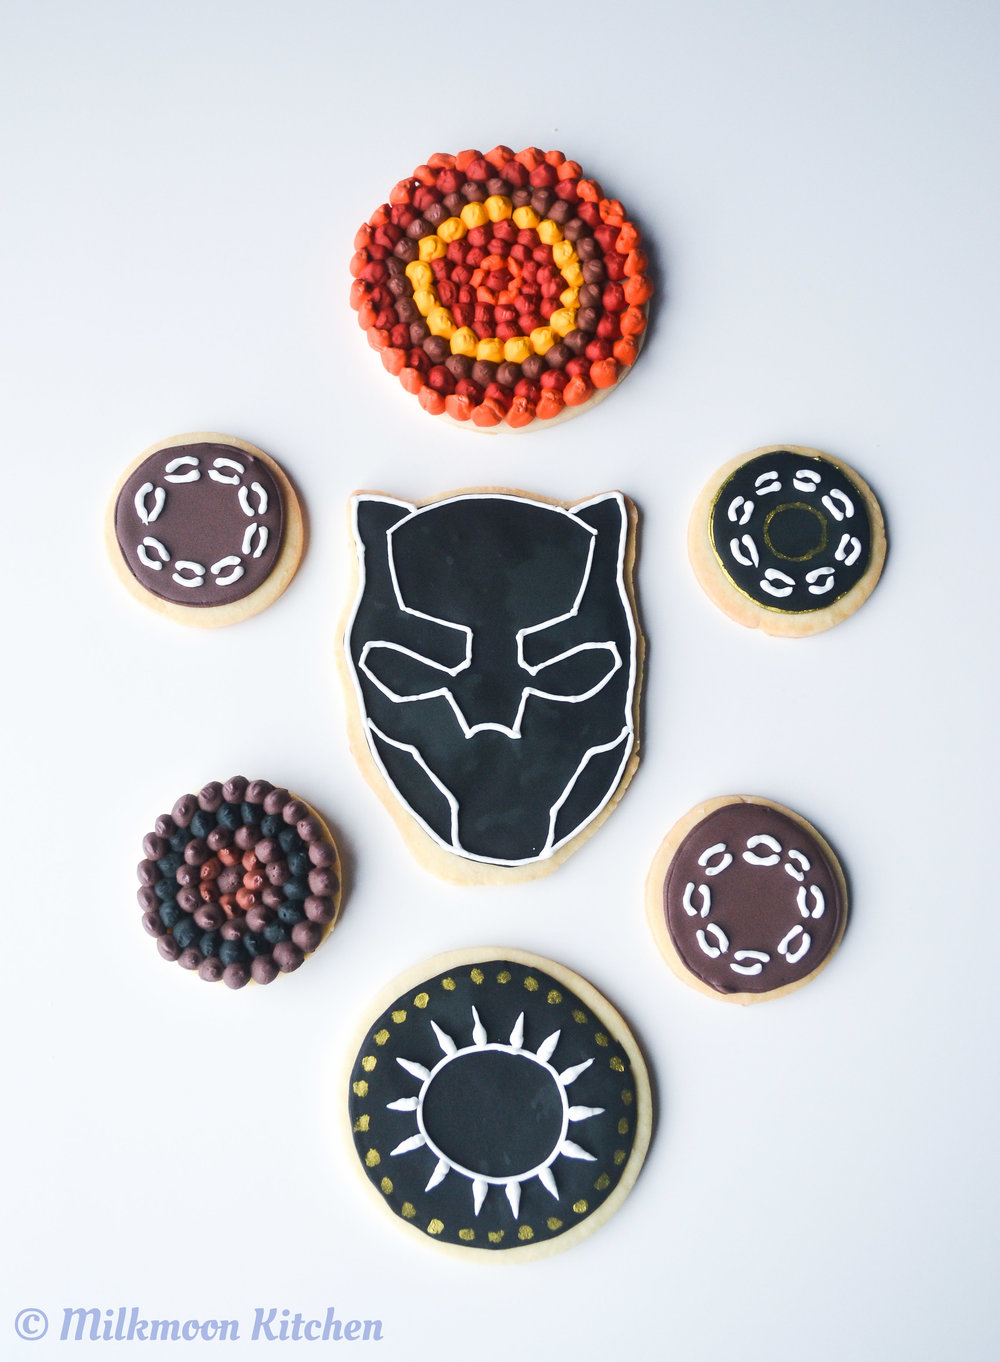 Black Panther Cookies by Milkmoon Kitchen